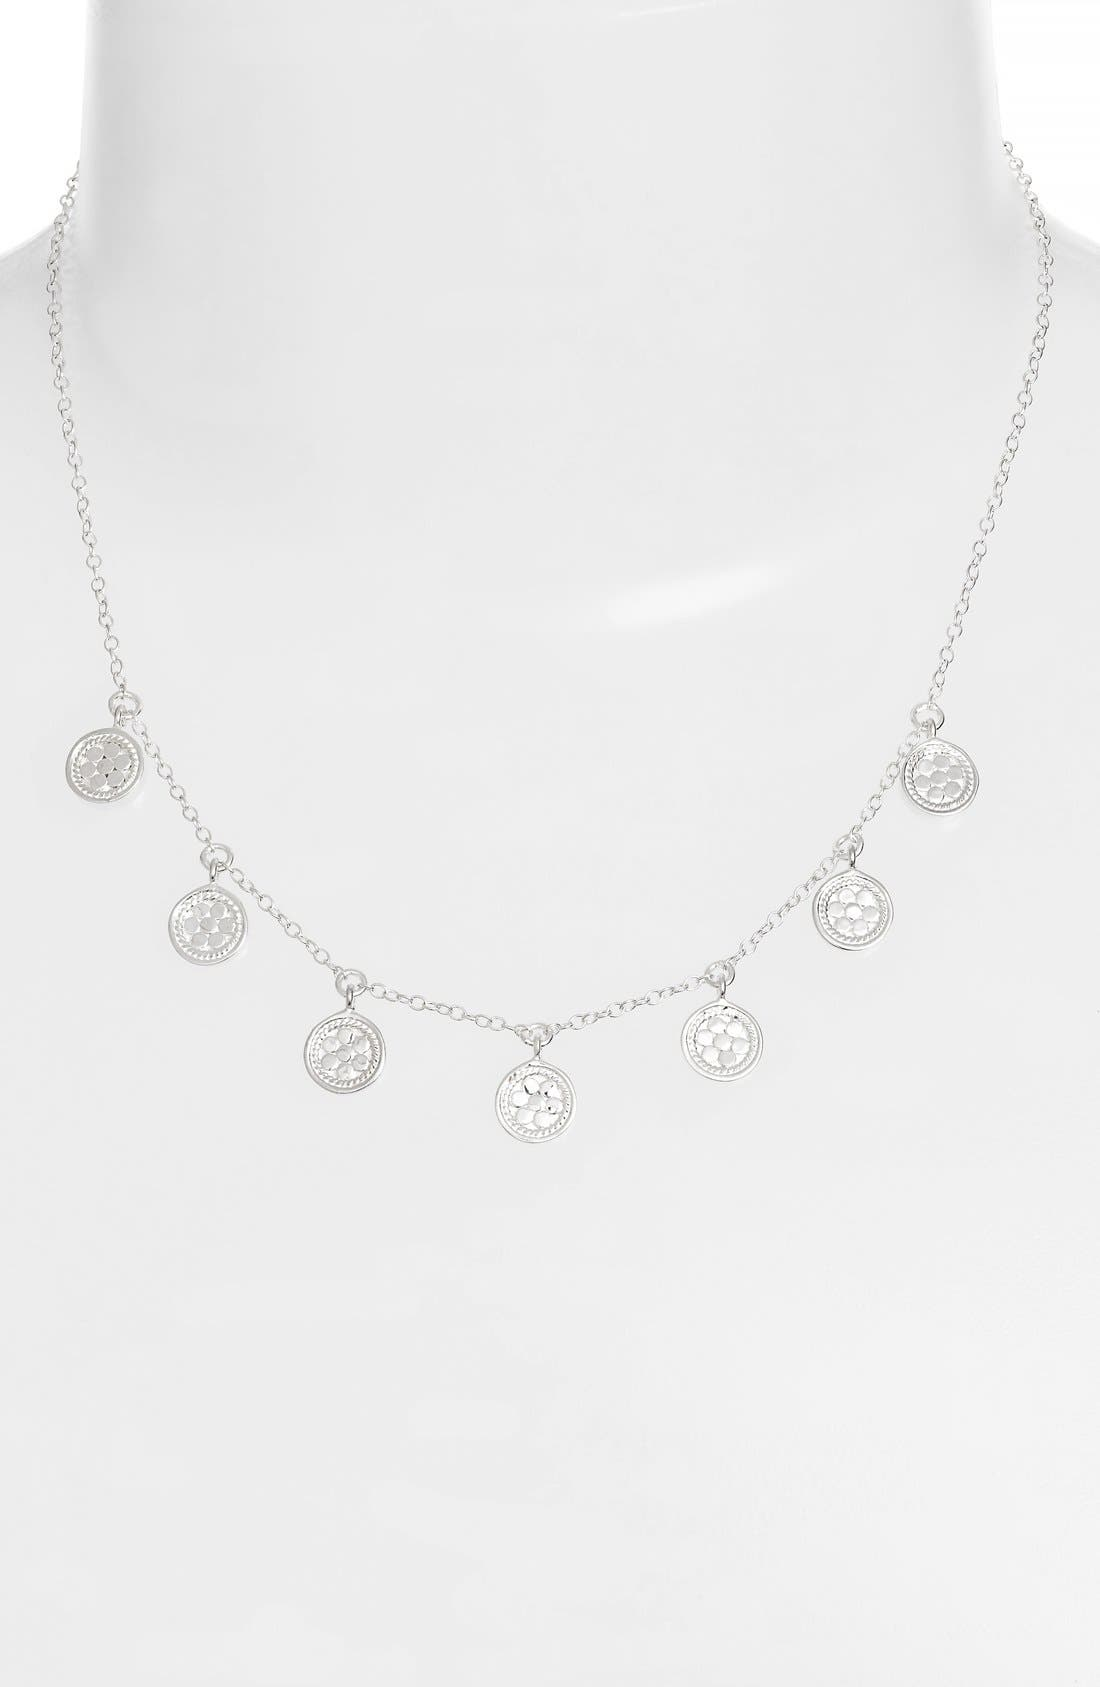 ANNA BECK Gili Charm Necklace